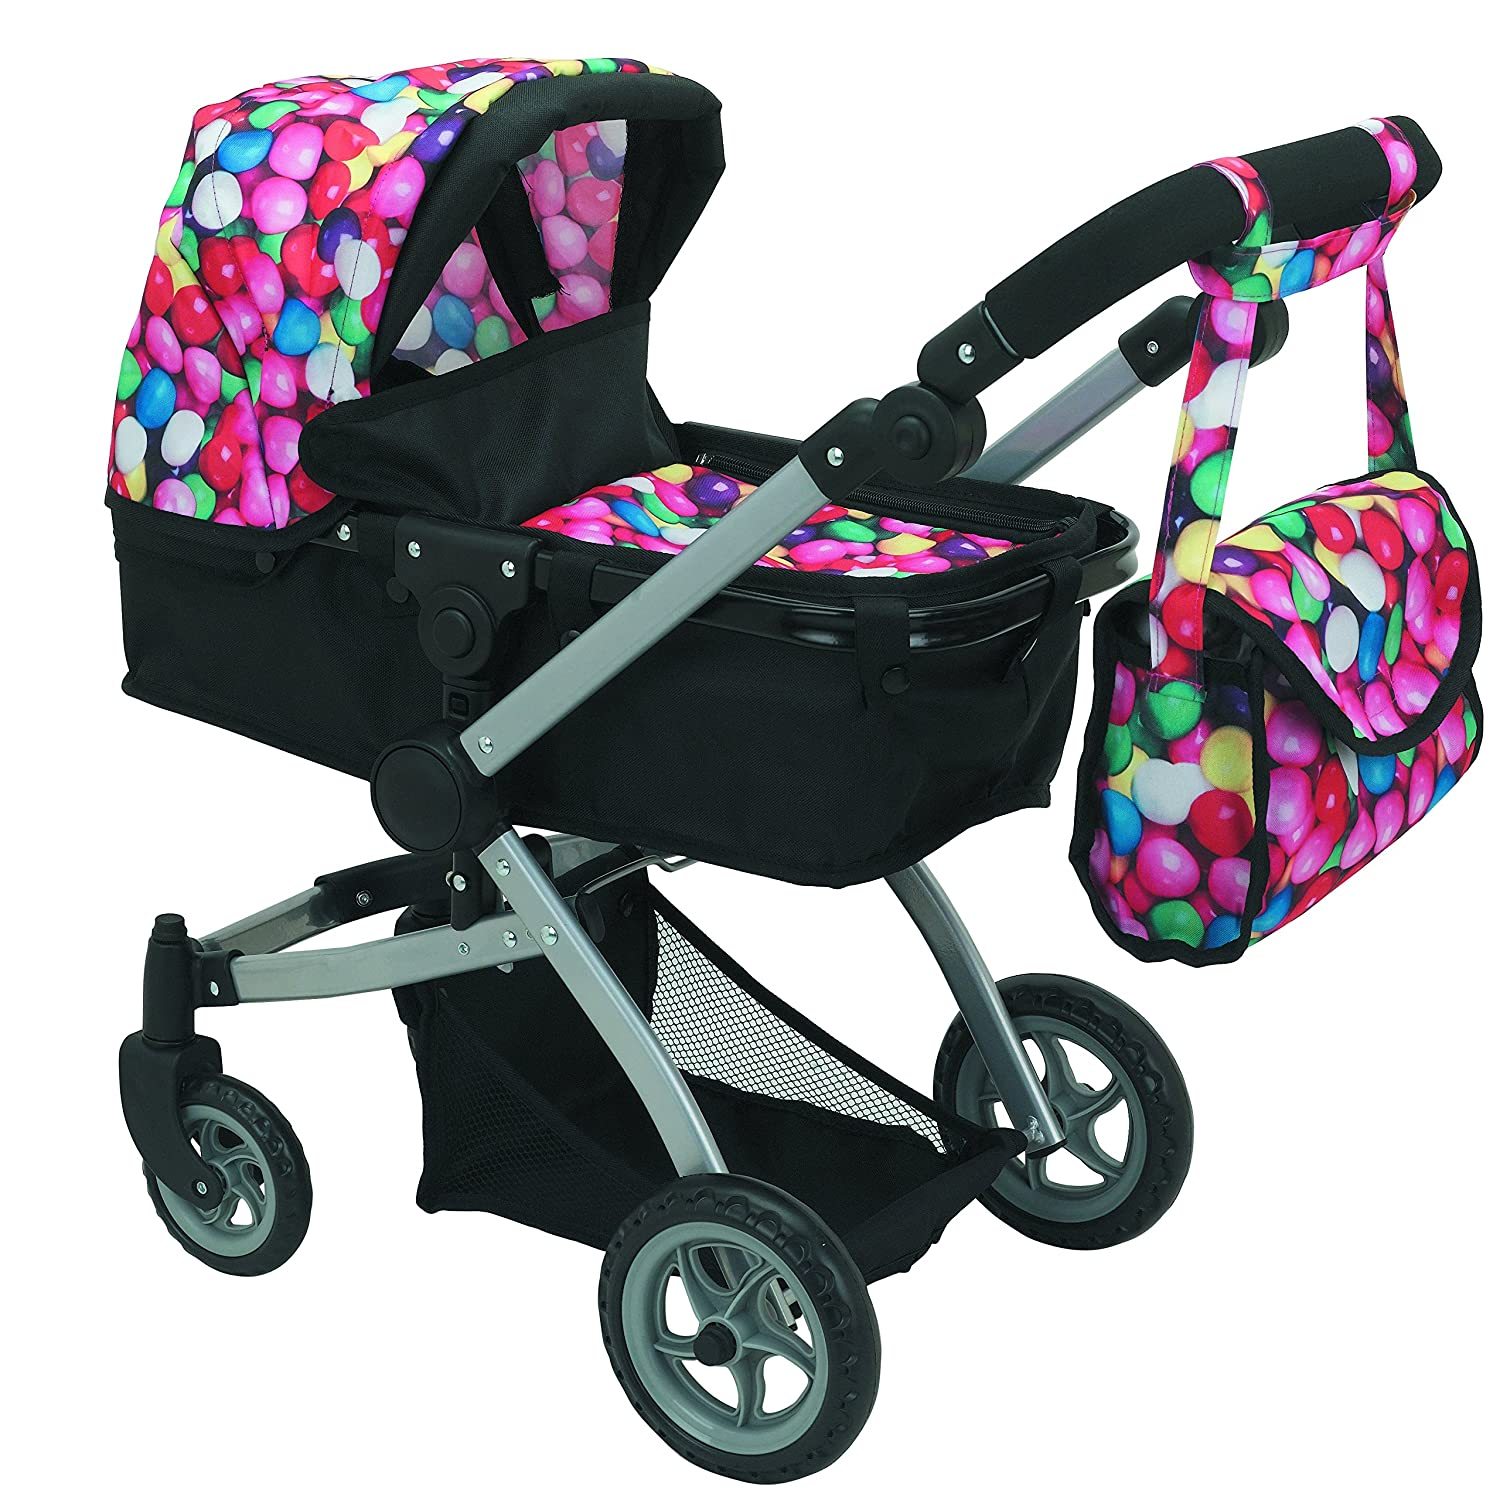 Babyboo Deluxe Doll Pram Color Gumball & Black with Swiveling Wheels & Adjustable Handle and Free Carriage Bag - 9651B   B01FE9PQVO